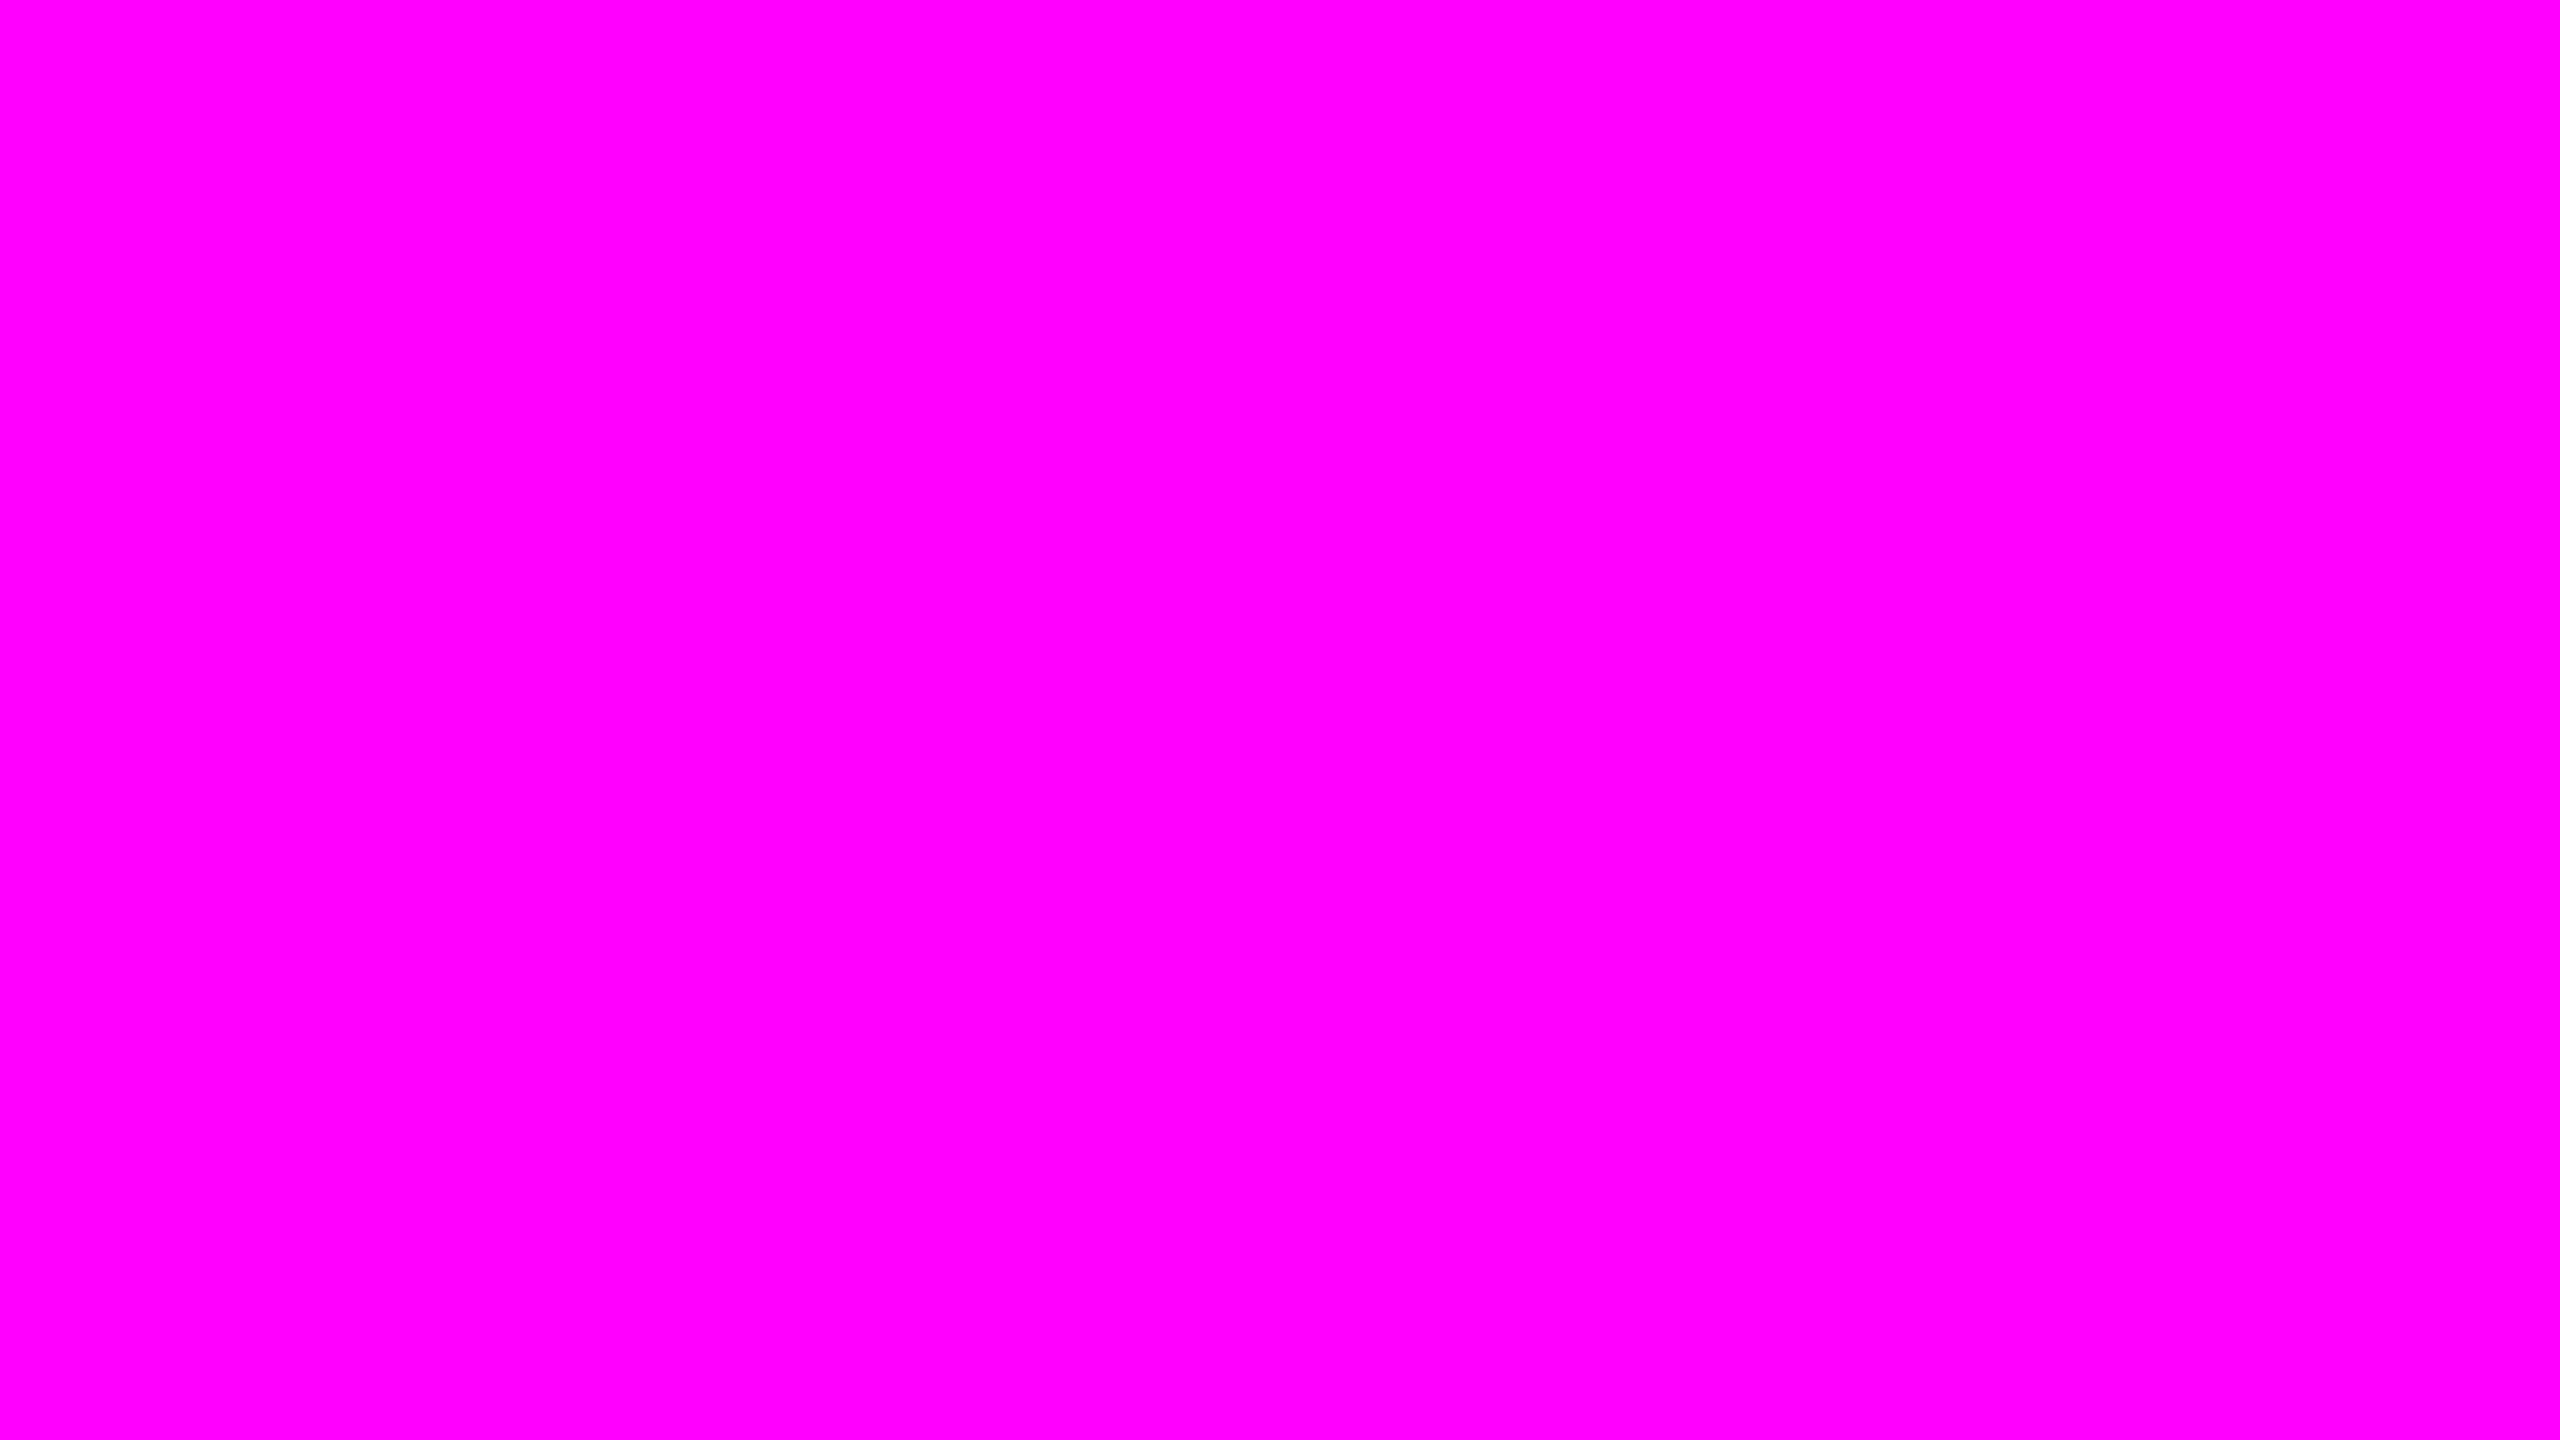 2560x1440 Magenta Solid Color Background